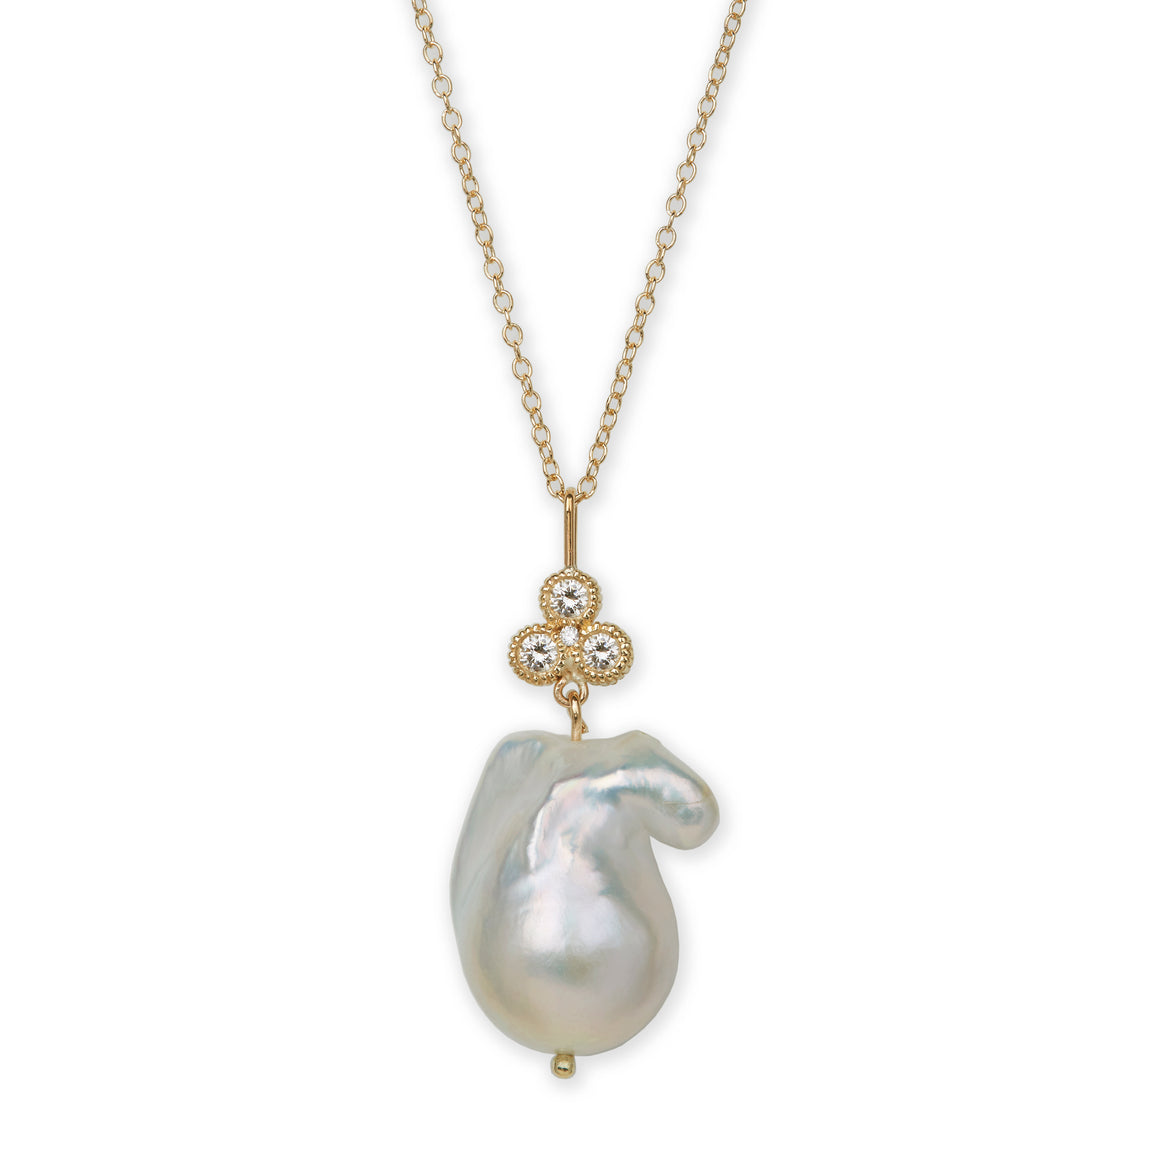 Nirvana Pearl Necklace